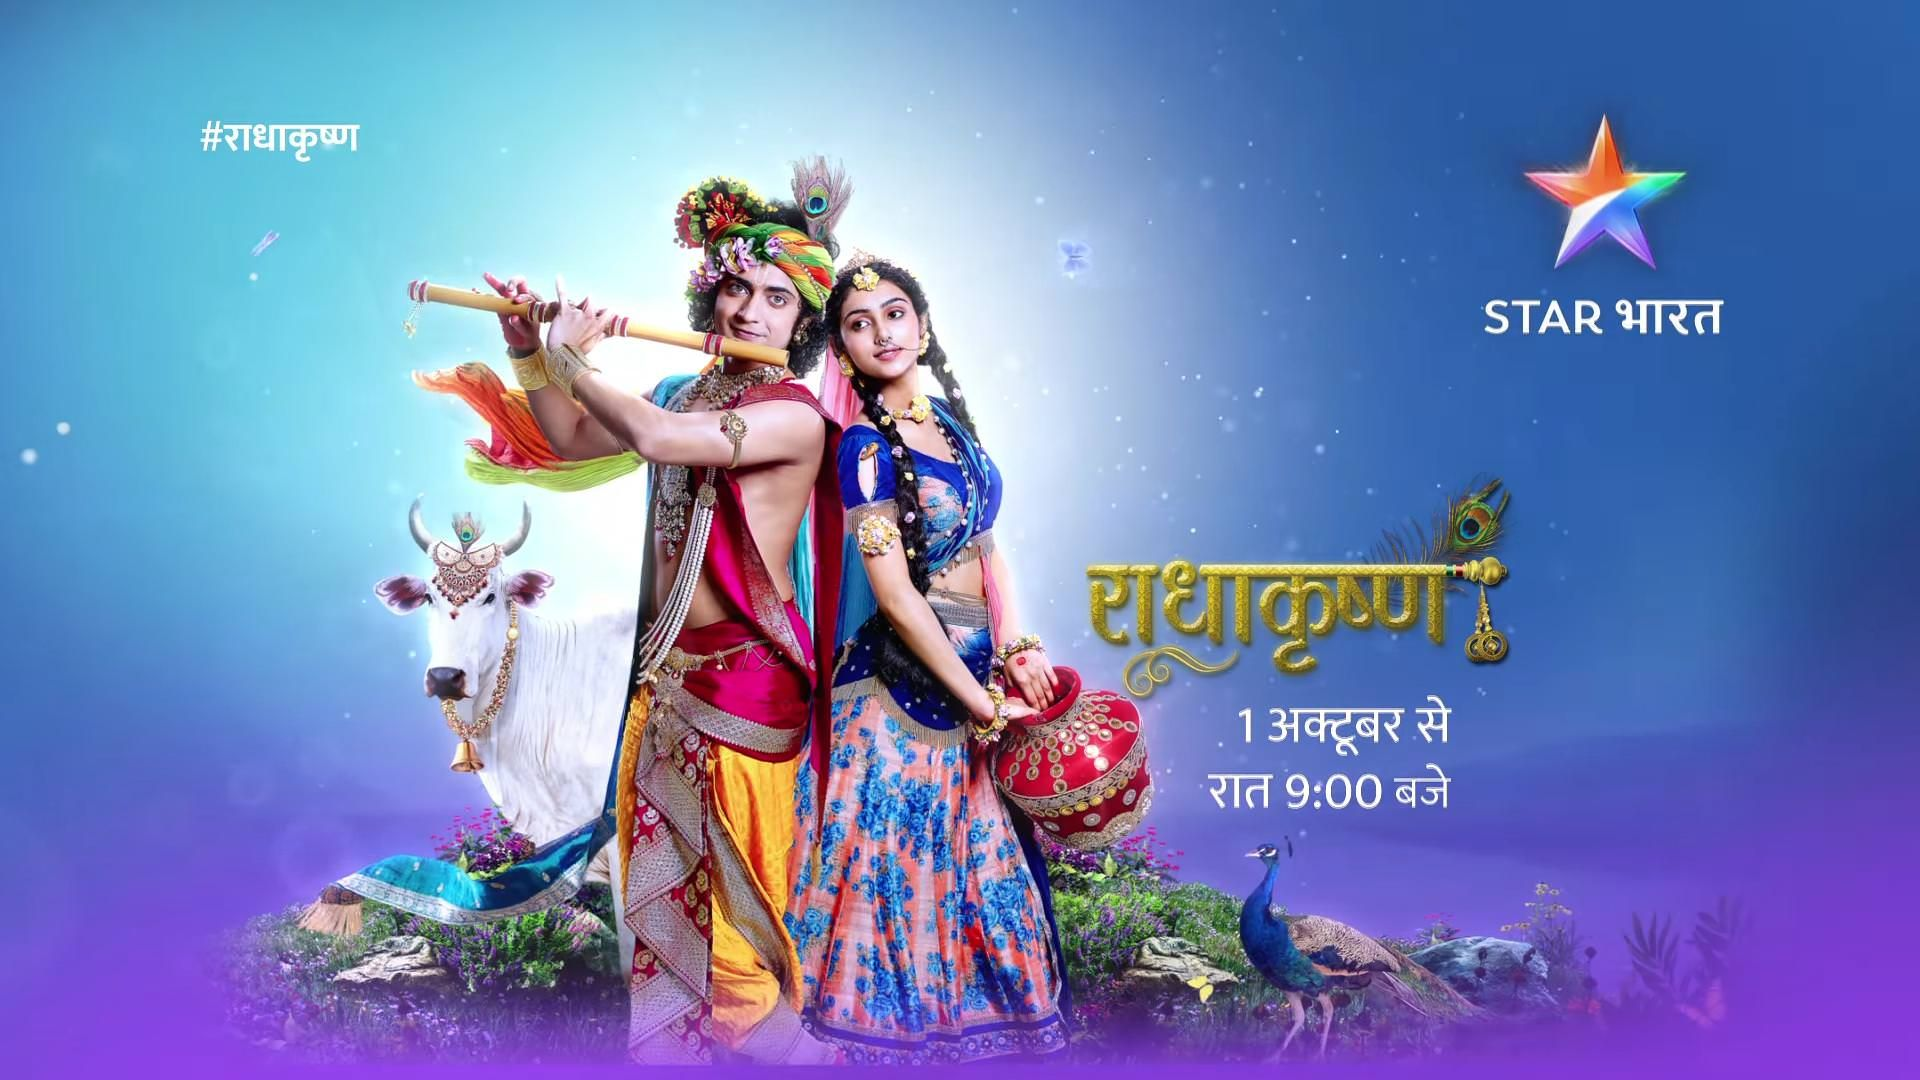 Radha Krishna Star Bharat Serial Hd Images Krishna Pictures Radha Krishna Photo Radha Krishna Pictures